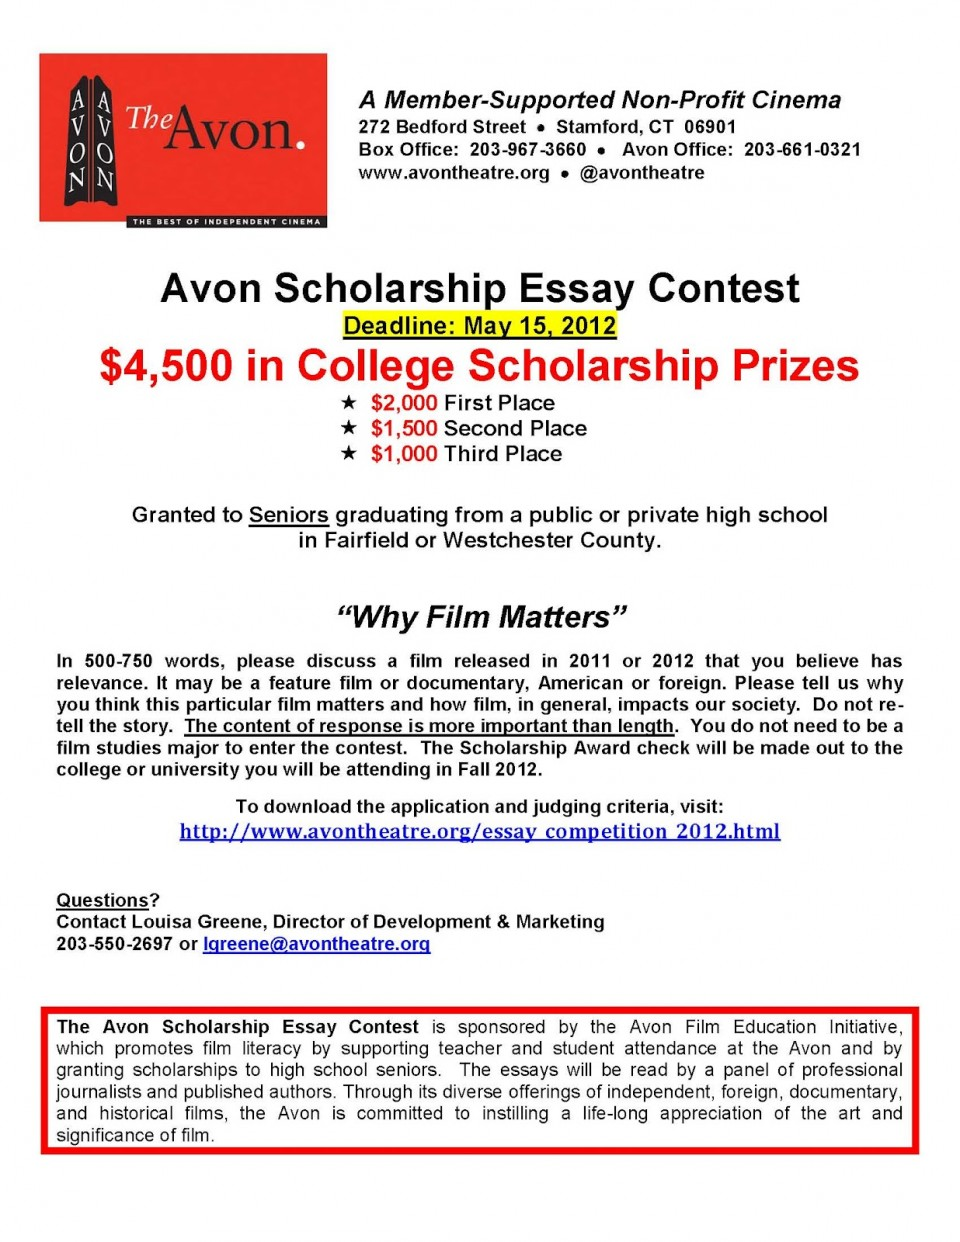 002 Essay Example No Scholarships College Scholarship Prowler Free For High School Seniors Avonscholarshipessaycontest2012 In Texas California Class Of Short Exceptional December 2018 Undergraduates 960